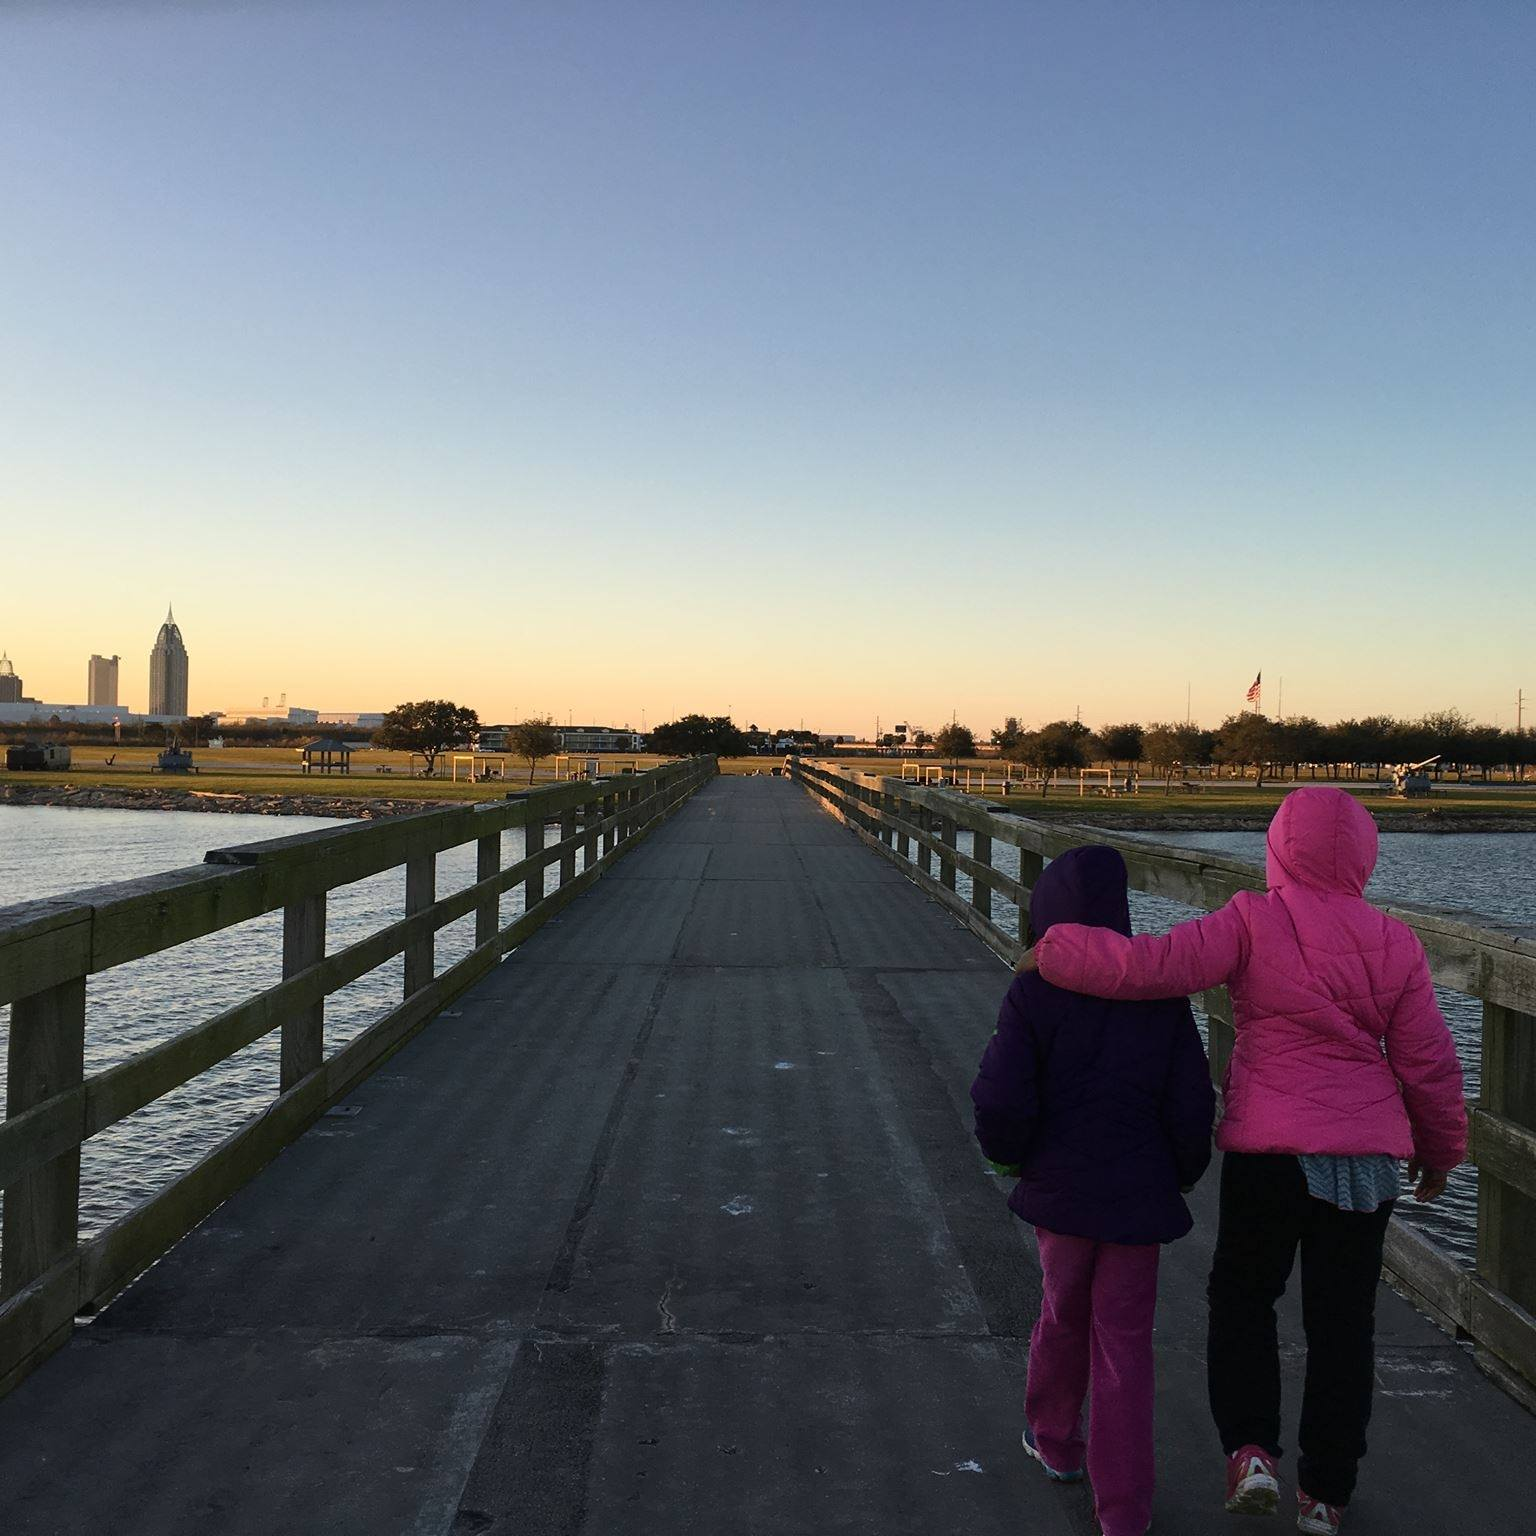 Precious's two little girls walking on a pier in Mobile Bay, in Alabama,during one of her history detective trips. They, along with her husband, have accompanied her on several of these research journeys.